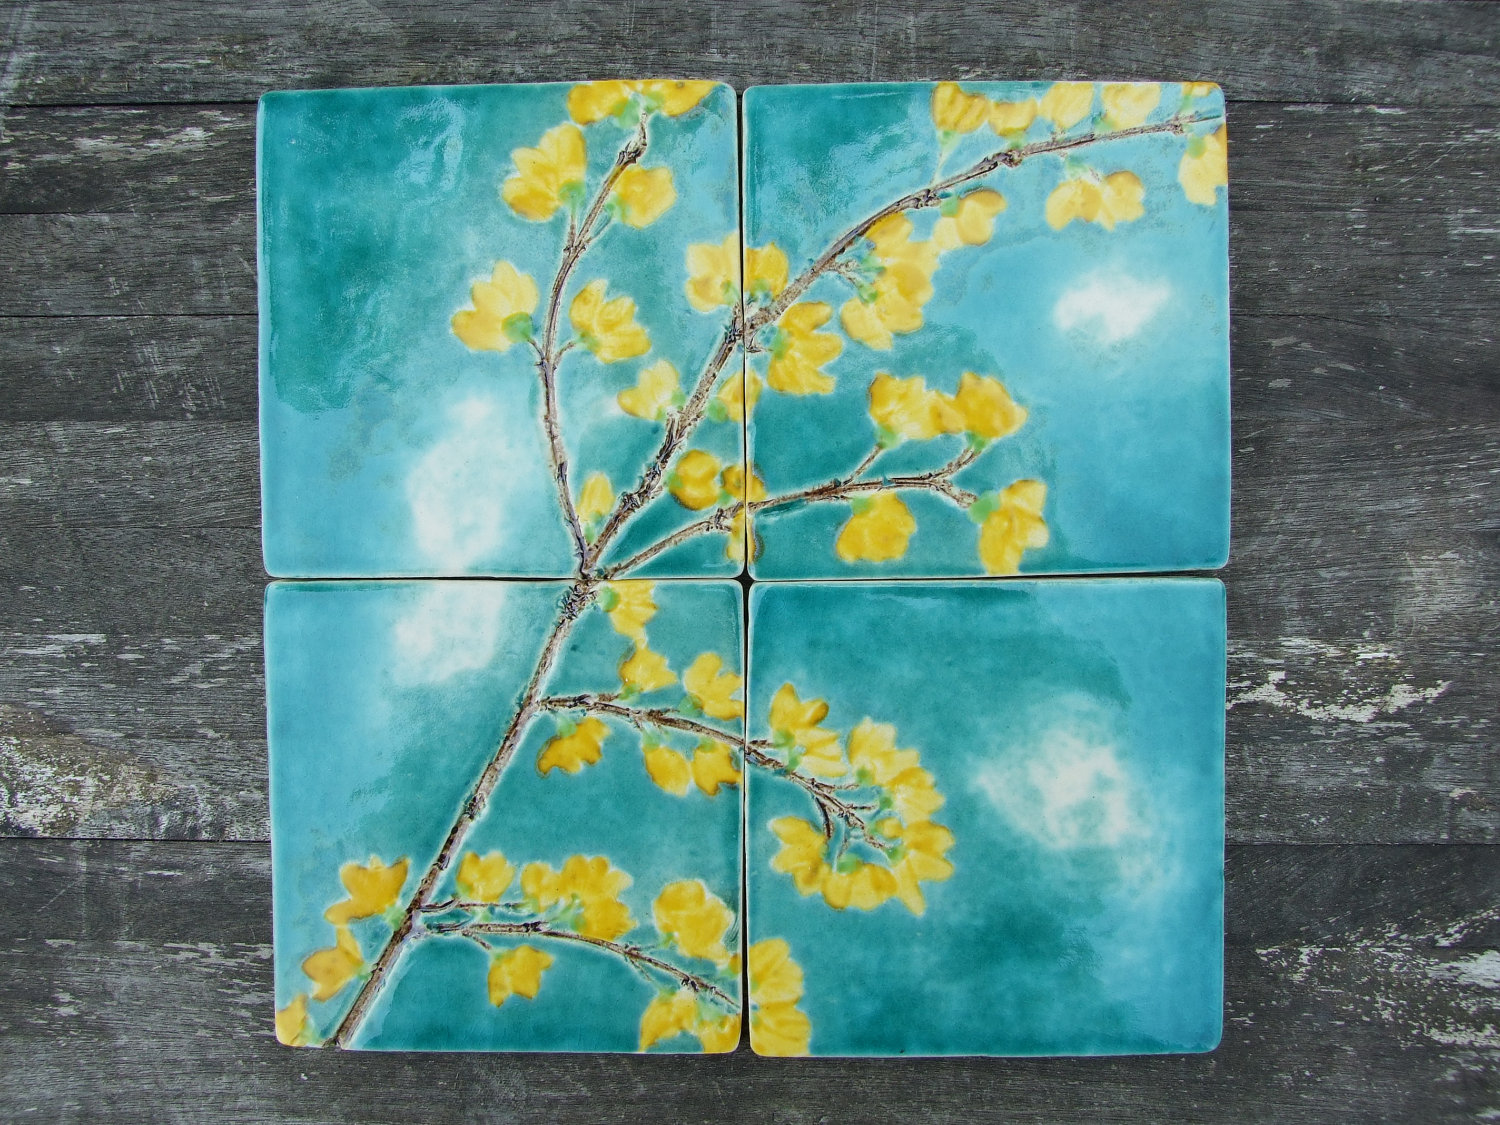 Cool pictures of 4x4 ceramic bathroom wall tile 4 6 7 8 9 10 11 12 13 dailygadgetfo Choice Image